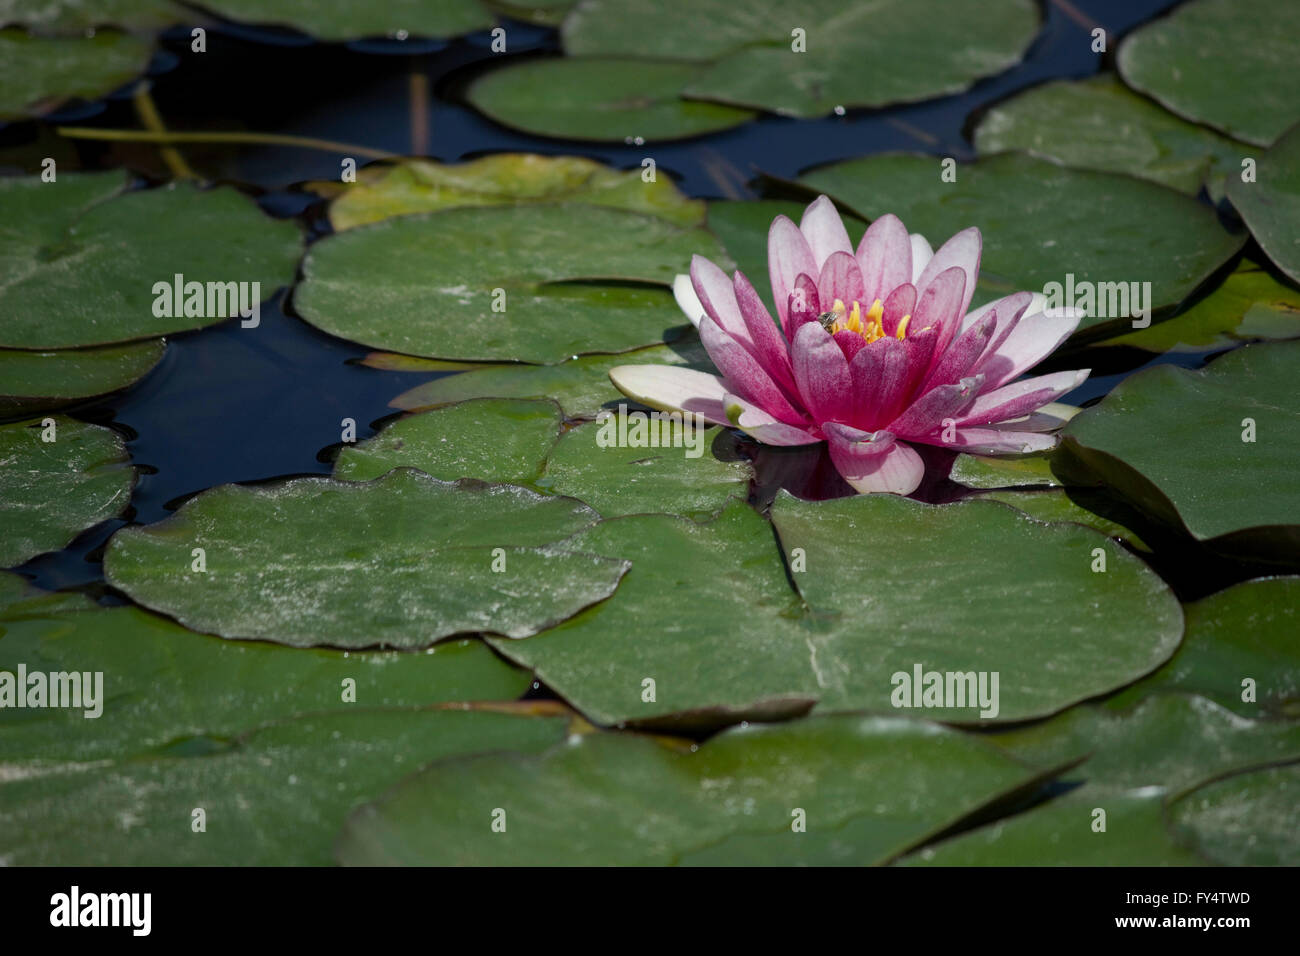 Closeup of a violet color water lily (waterlily plant) hydrophilic herb blossom and green lily pads floating on - Stock Image